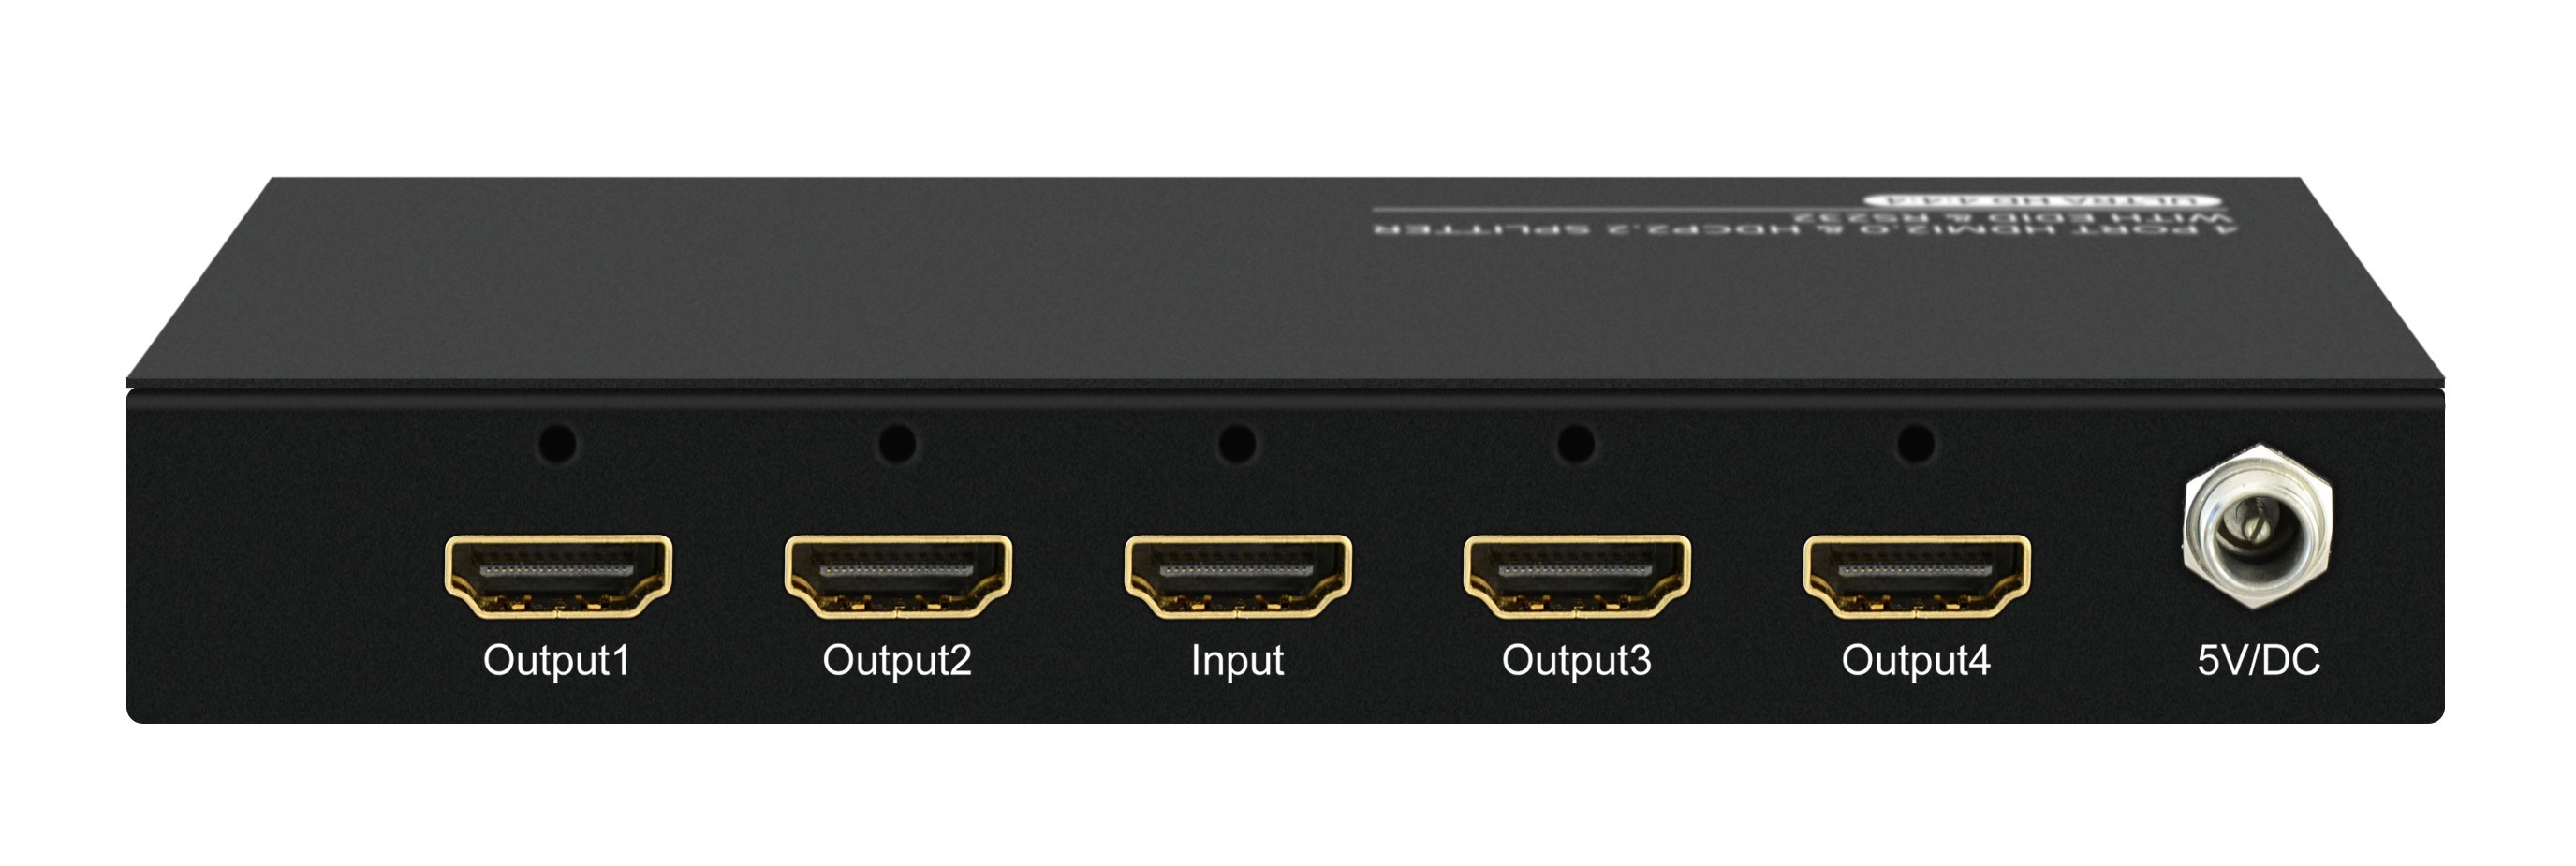 1X4 HDMI2.0 & HDCP2.2 SPLITTER WITH EDID & RS232